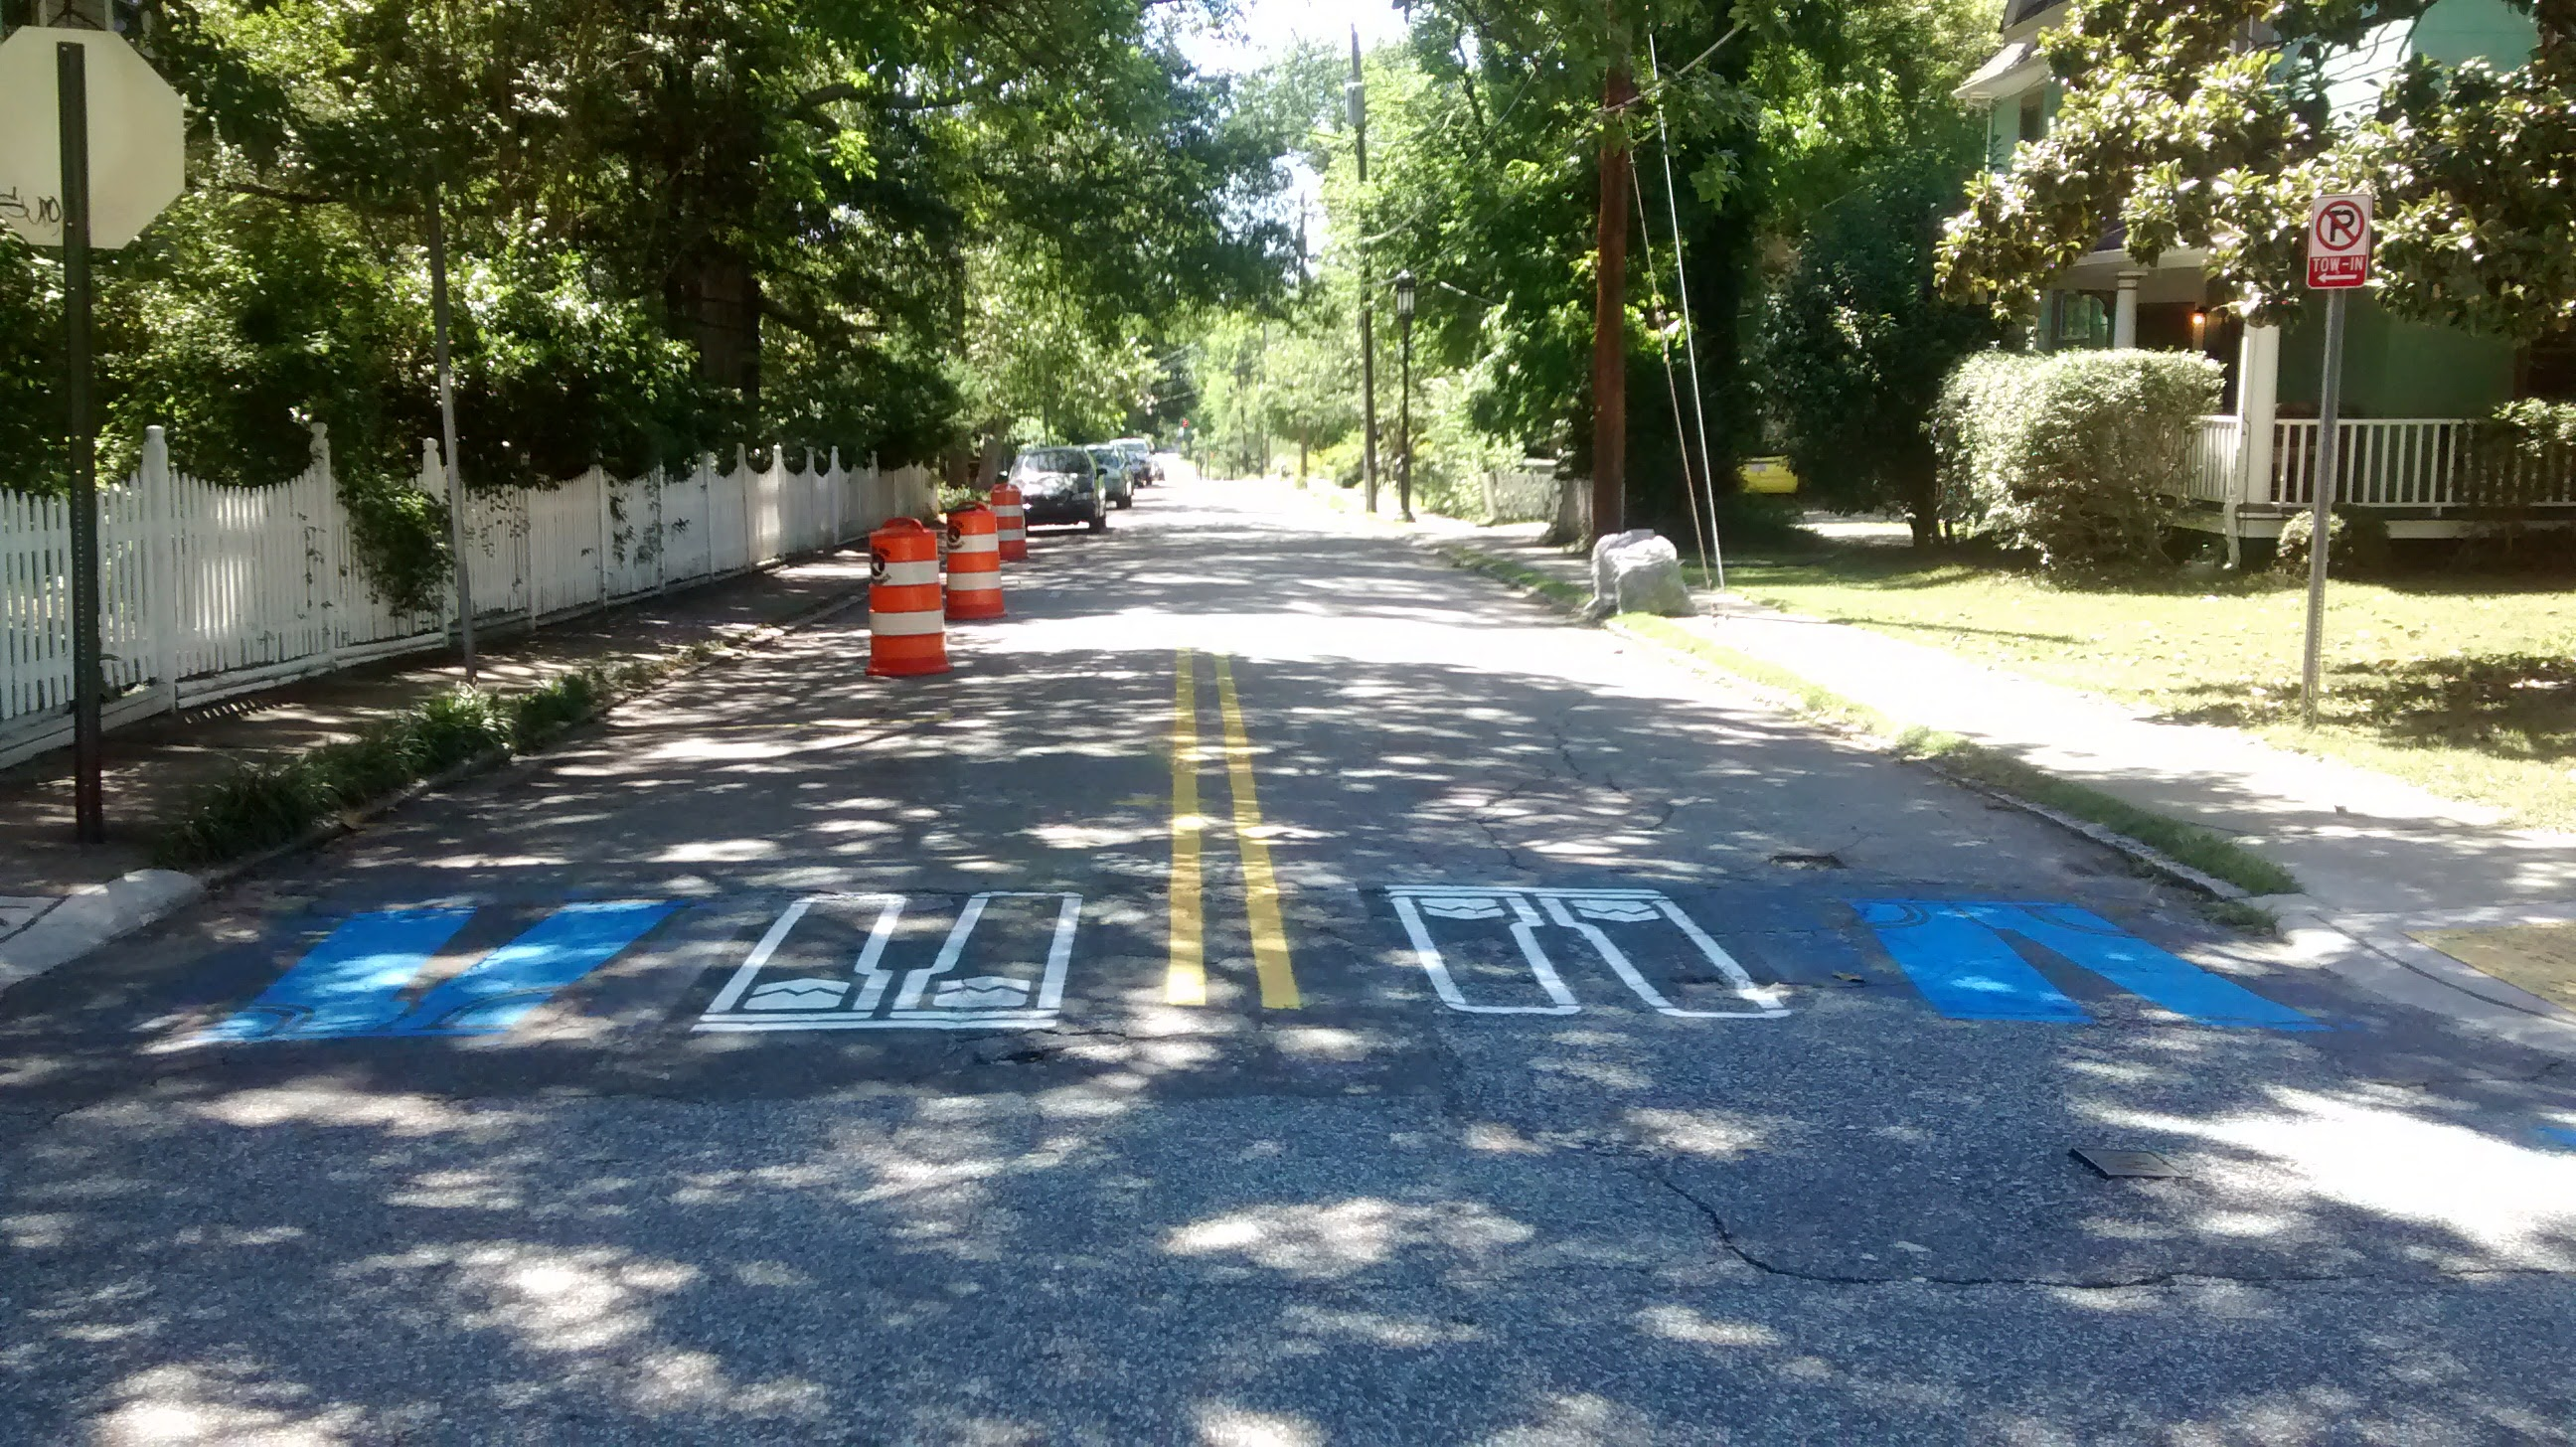 Crosswalk formed by stencils of blue jeans